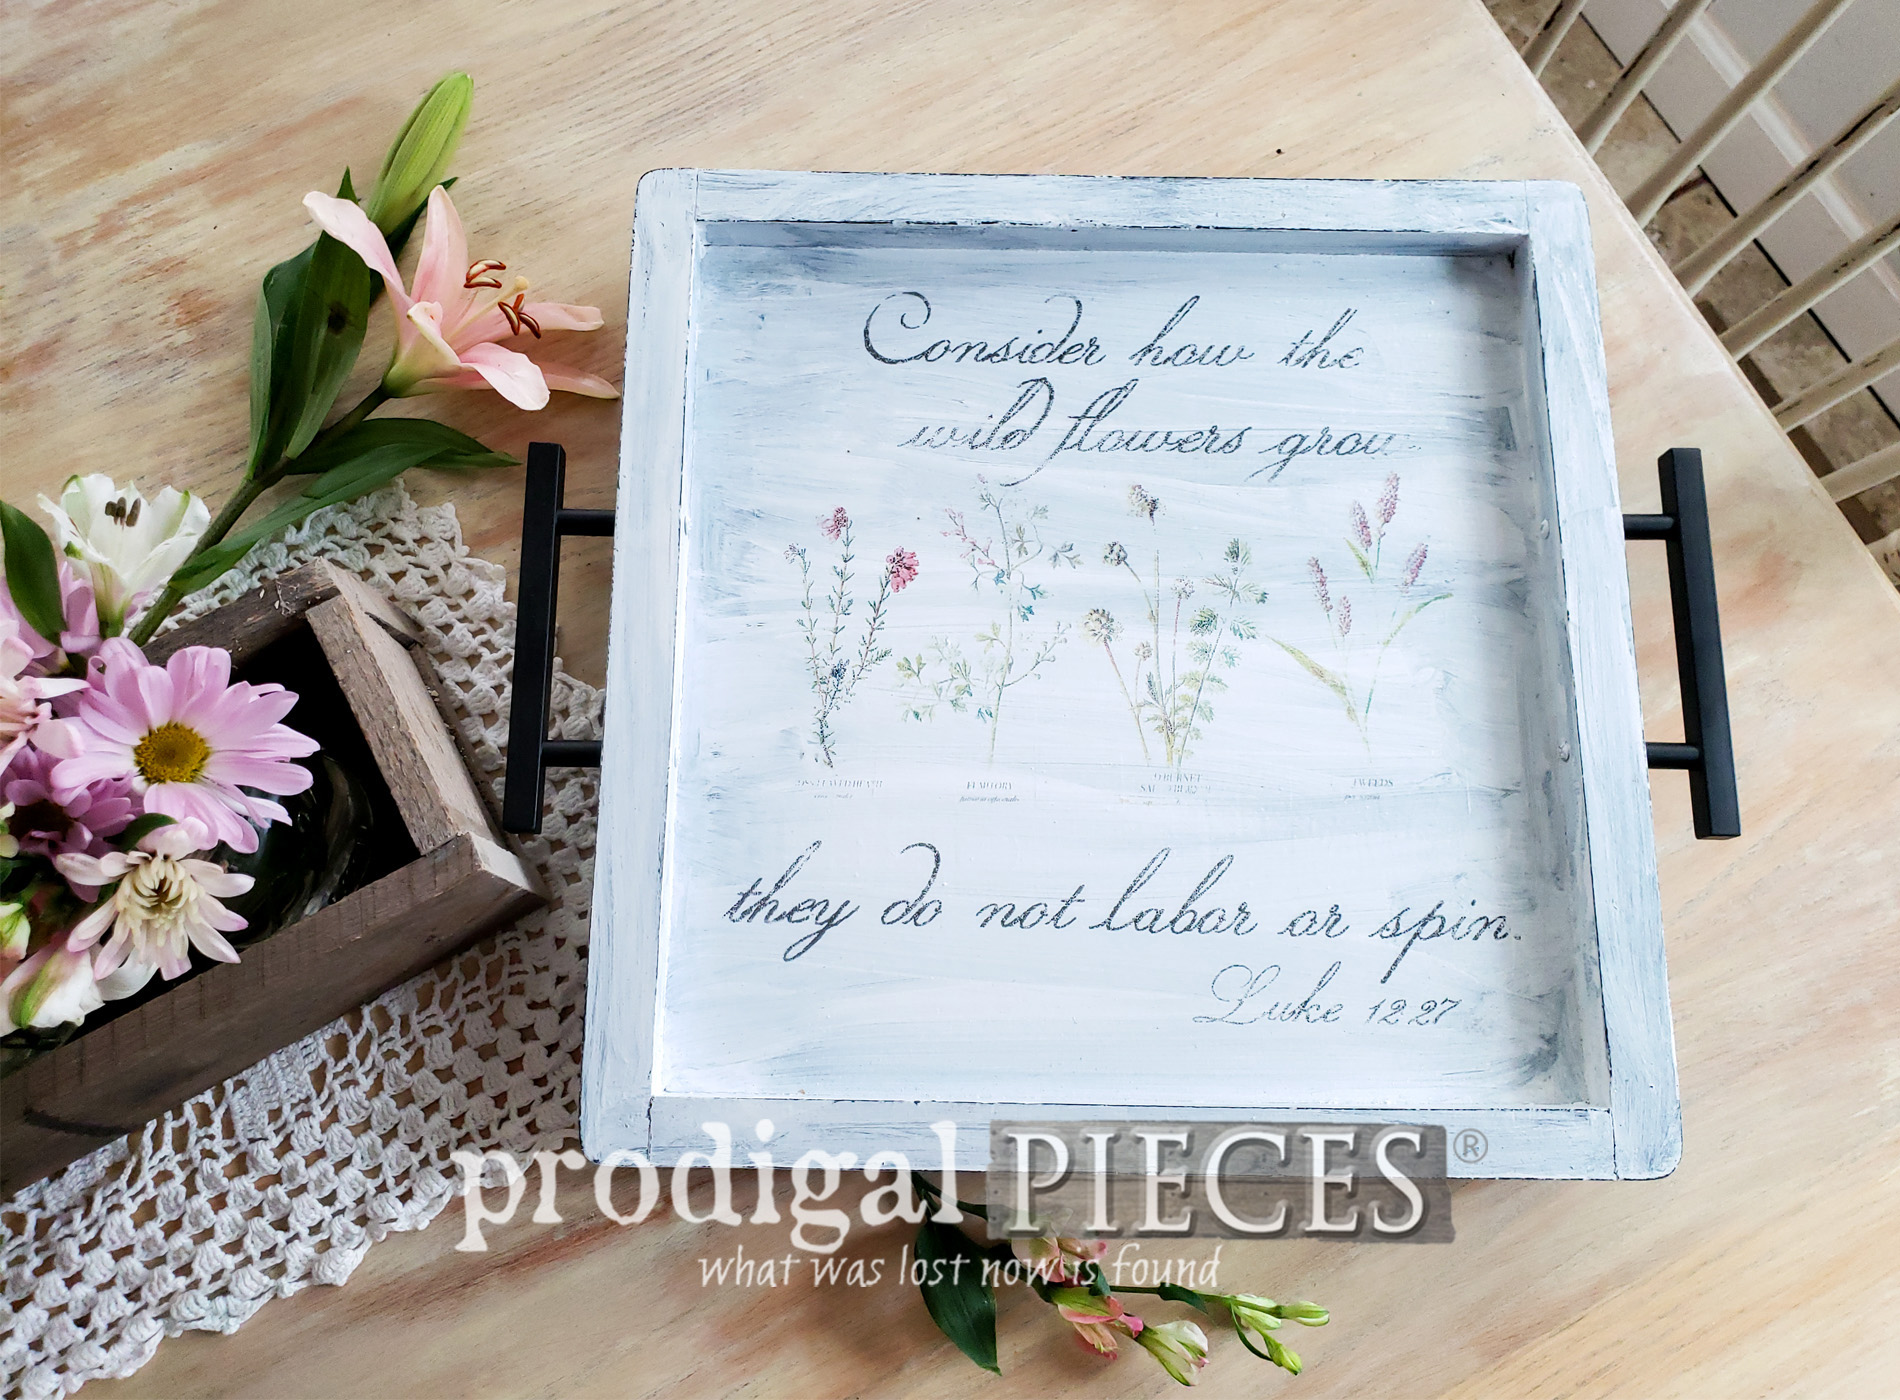 Featured Botanical Print Serving Tray Created from Thrifted Wall Art | Video Tutorial by Larissa of Prodigal Pieces | prodigalpieces.com #prodigalpieces #diy #home #farmhouse #vintage #homedecor #homedecorideas